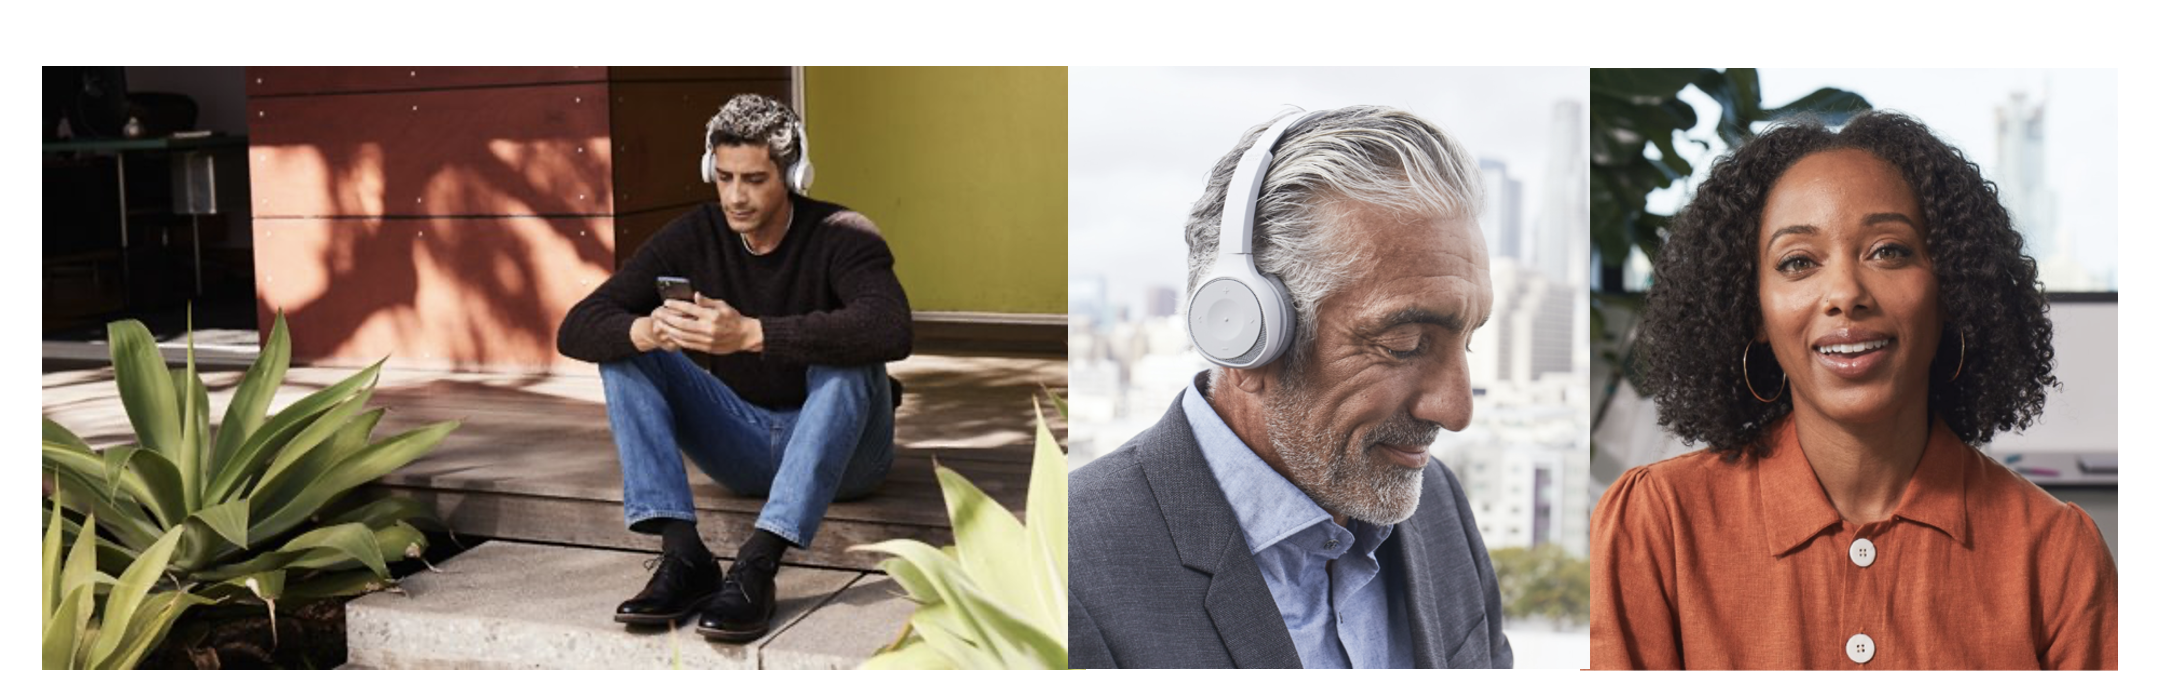 man sitting on stairs, man wearing cisco headset, and woman smiling